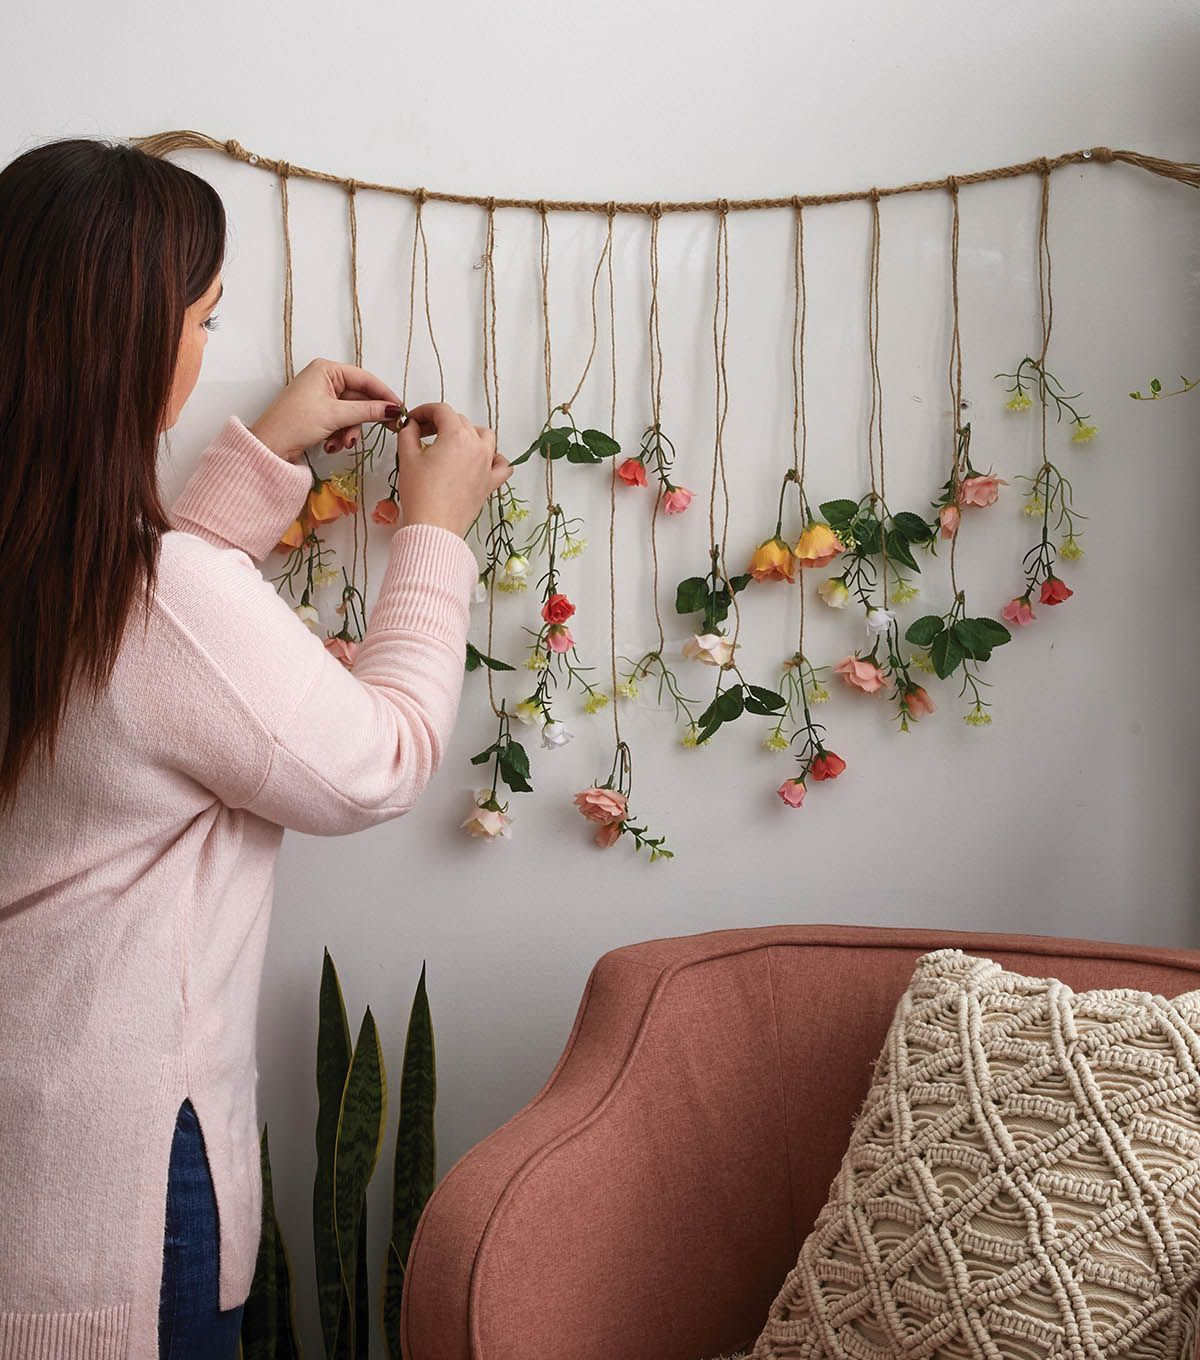 Floral Room How To Make A Falling Floral Wall Hanging Wall Decor Bedroom Floral Room Floral Bedroom